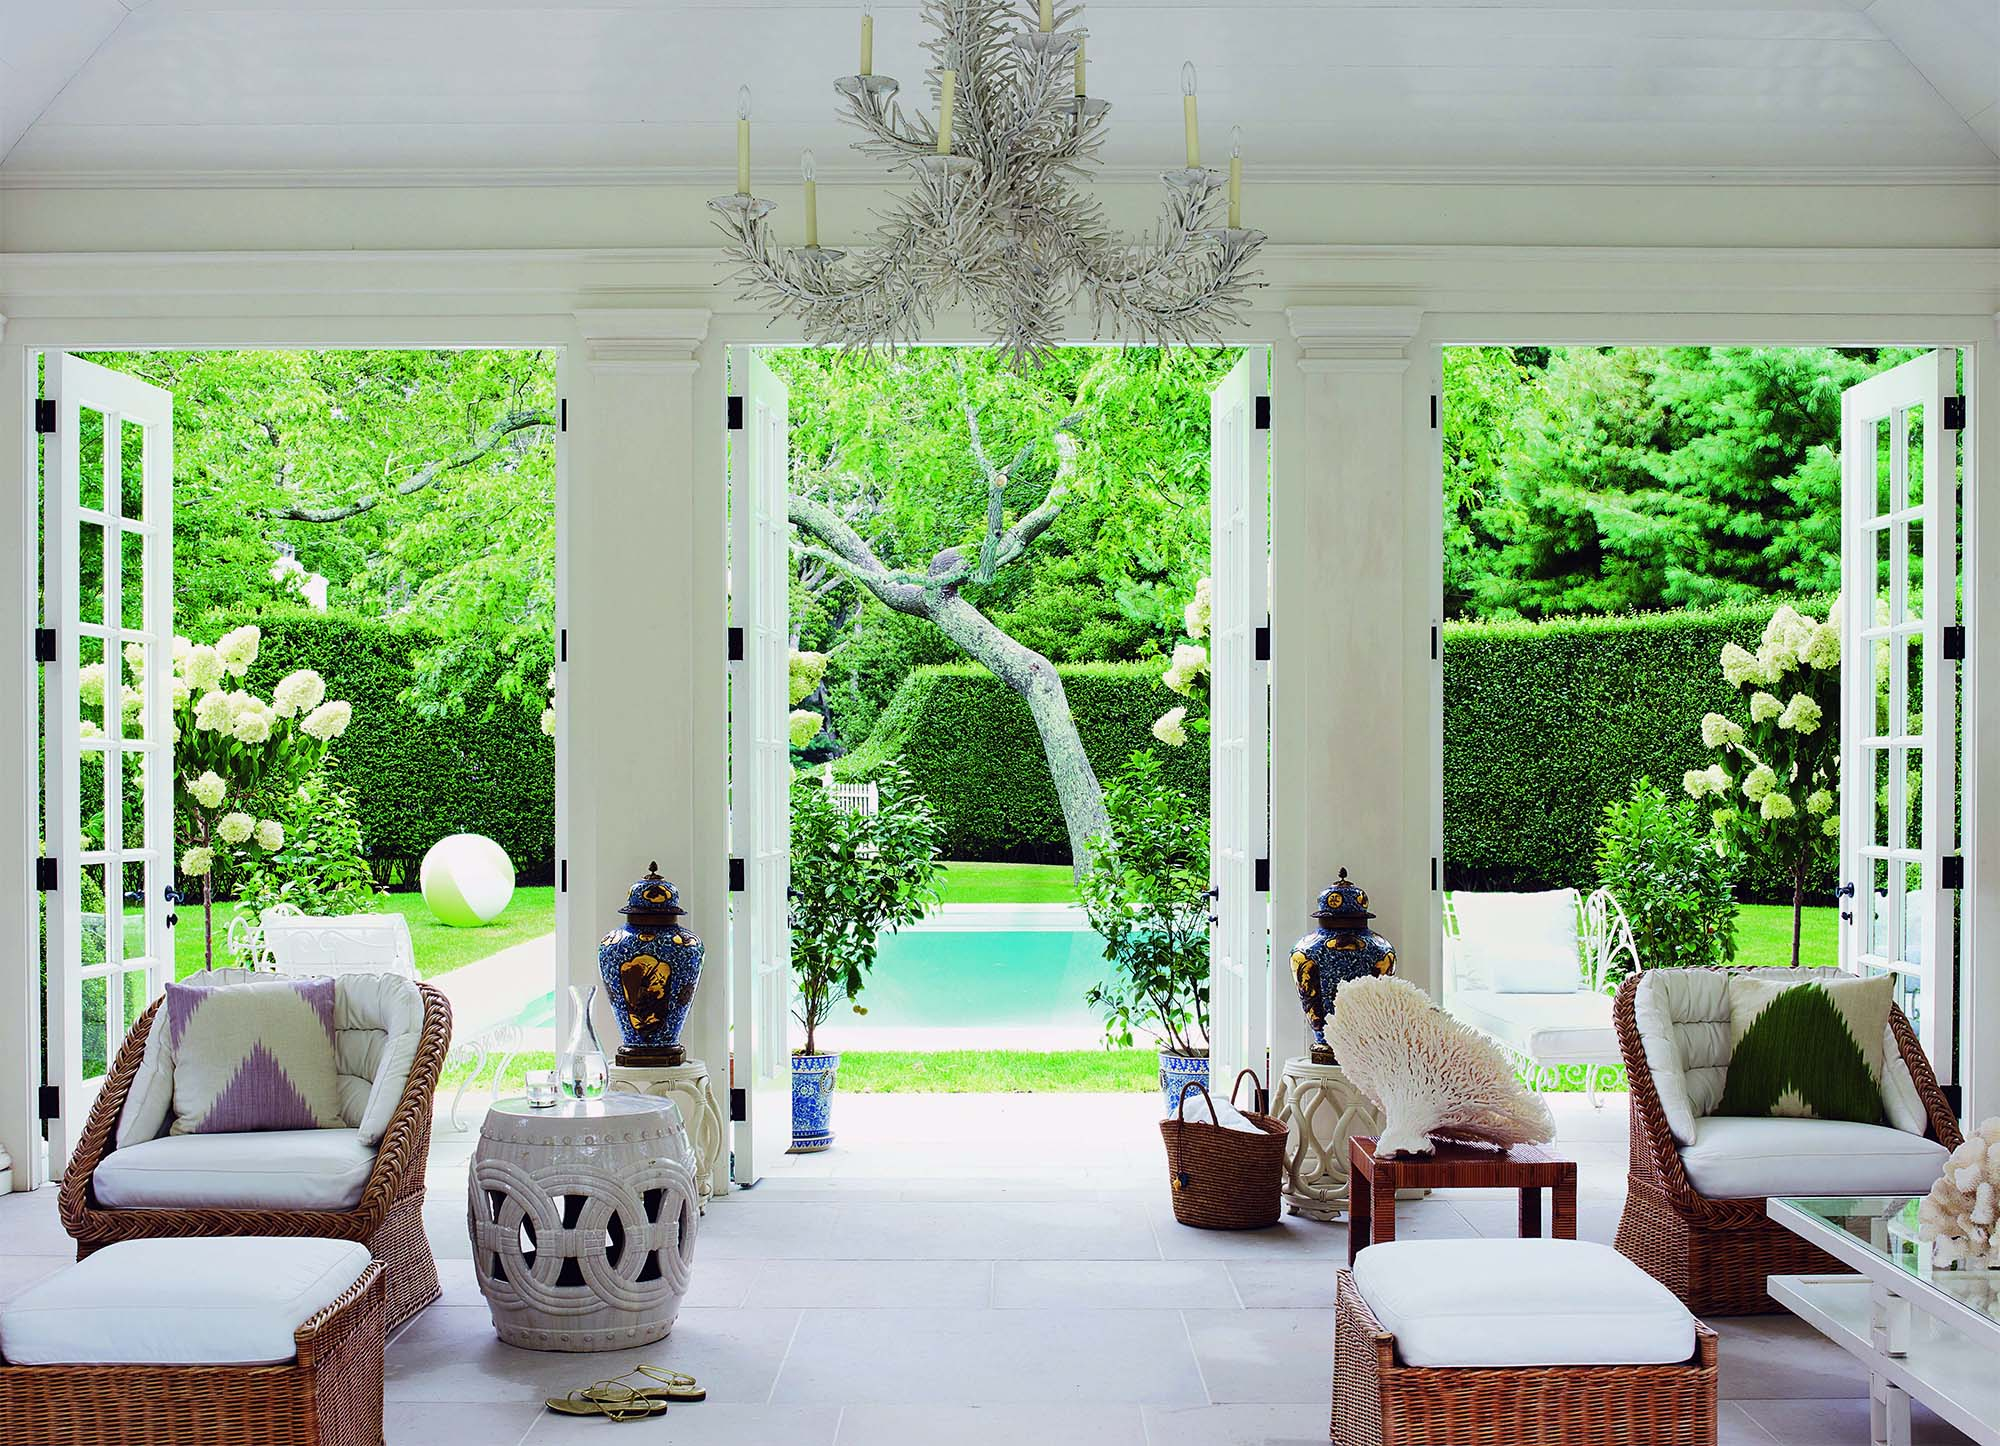 pool house interior french doors stone floors light and bright wicker furniture white cushions